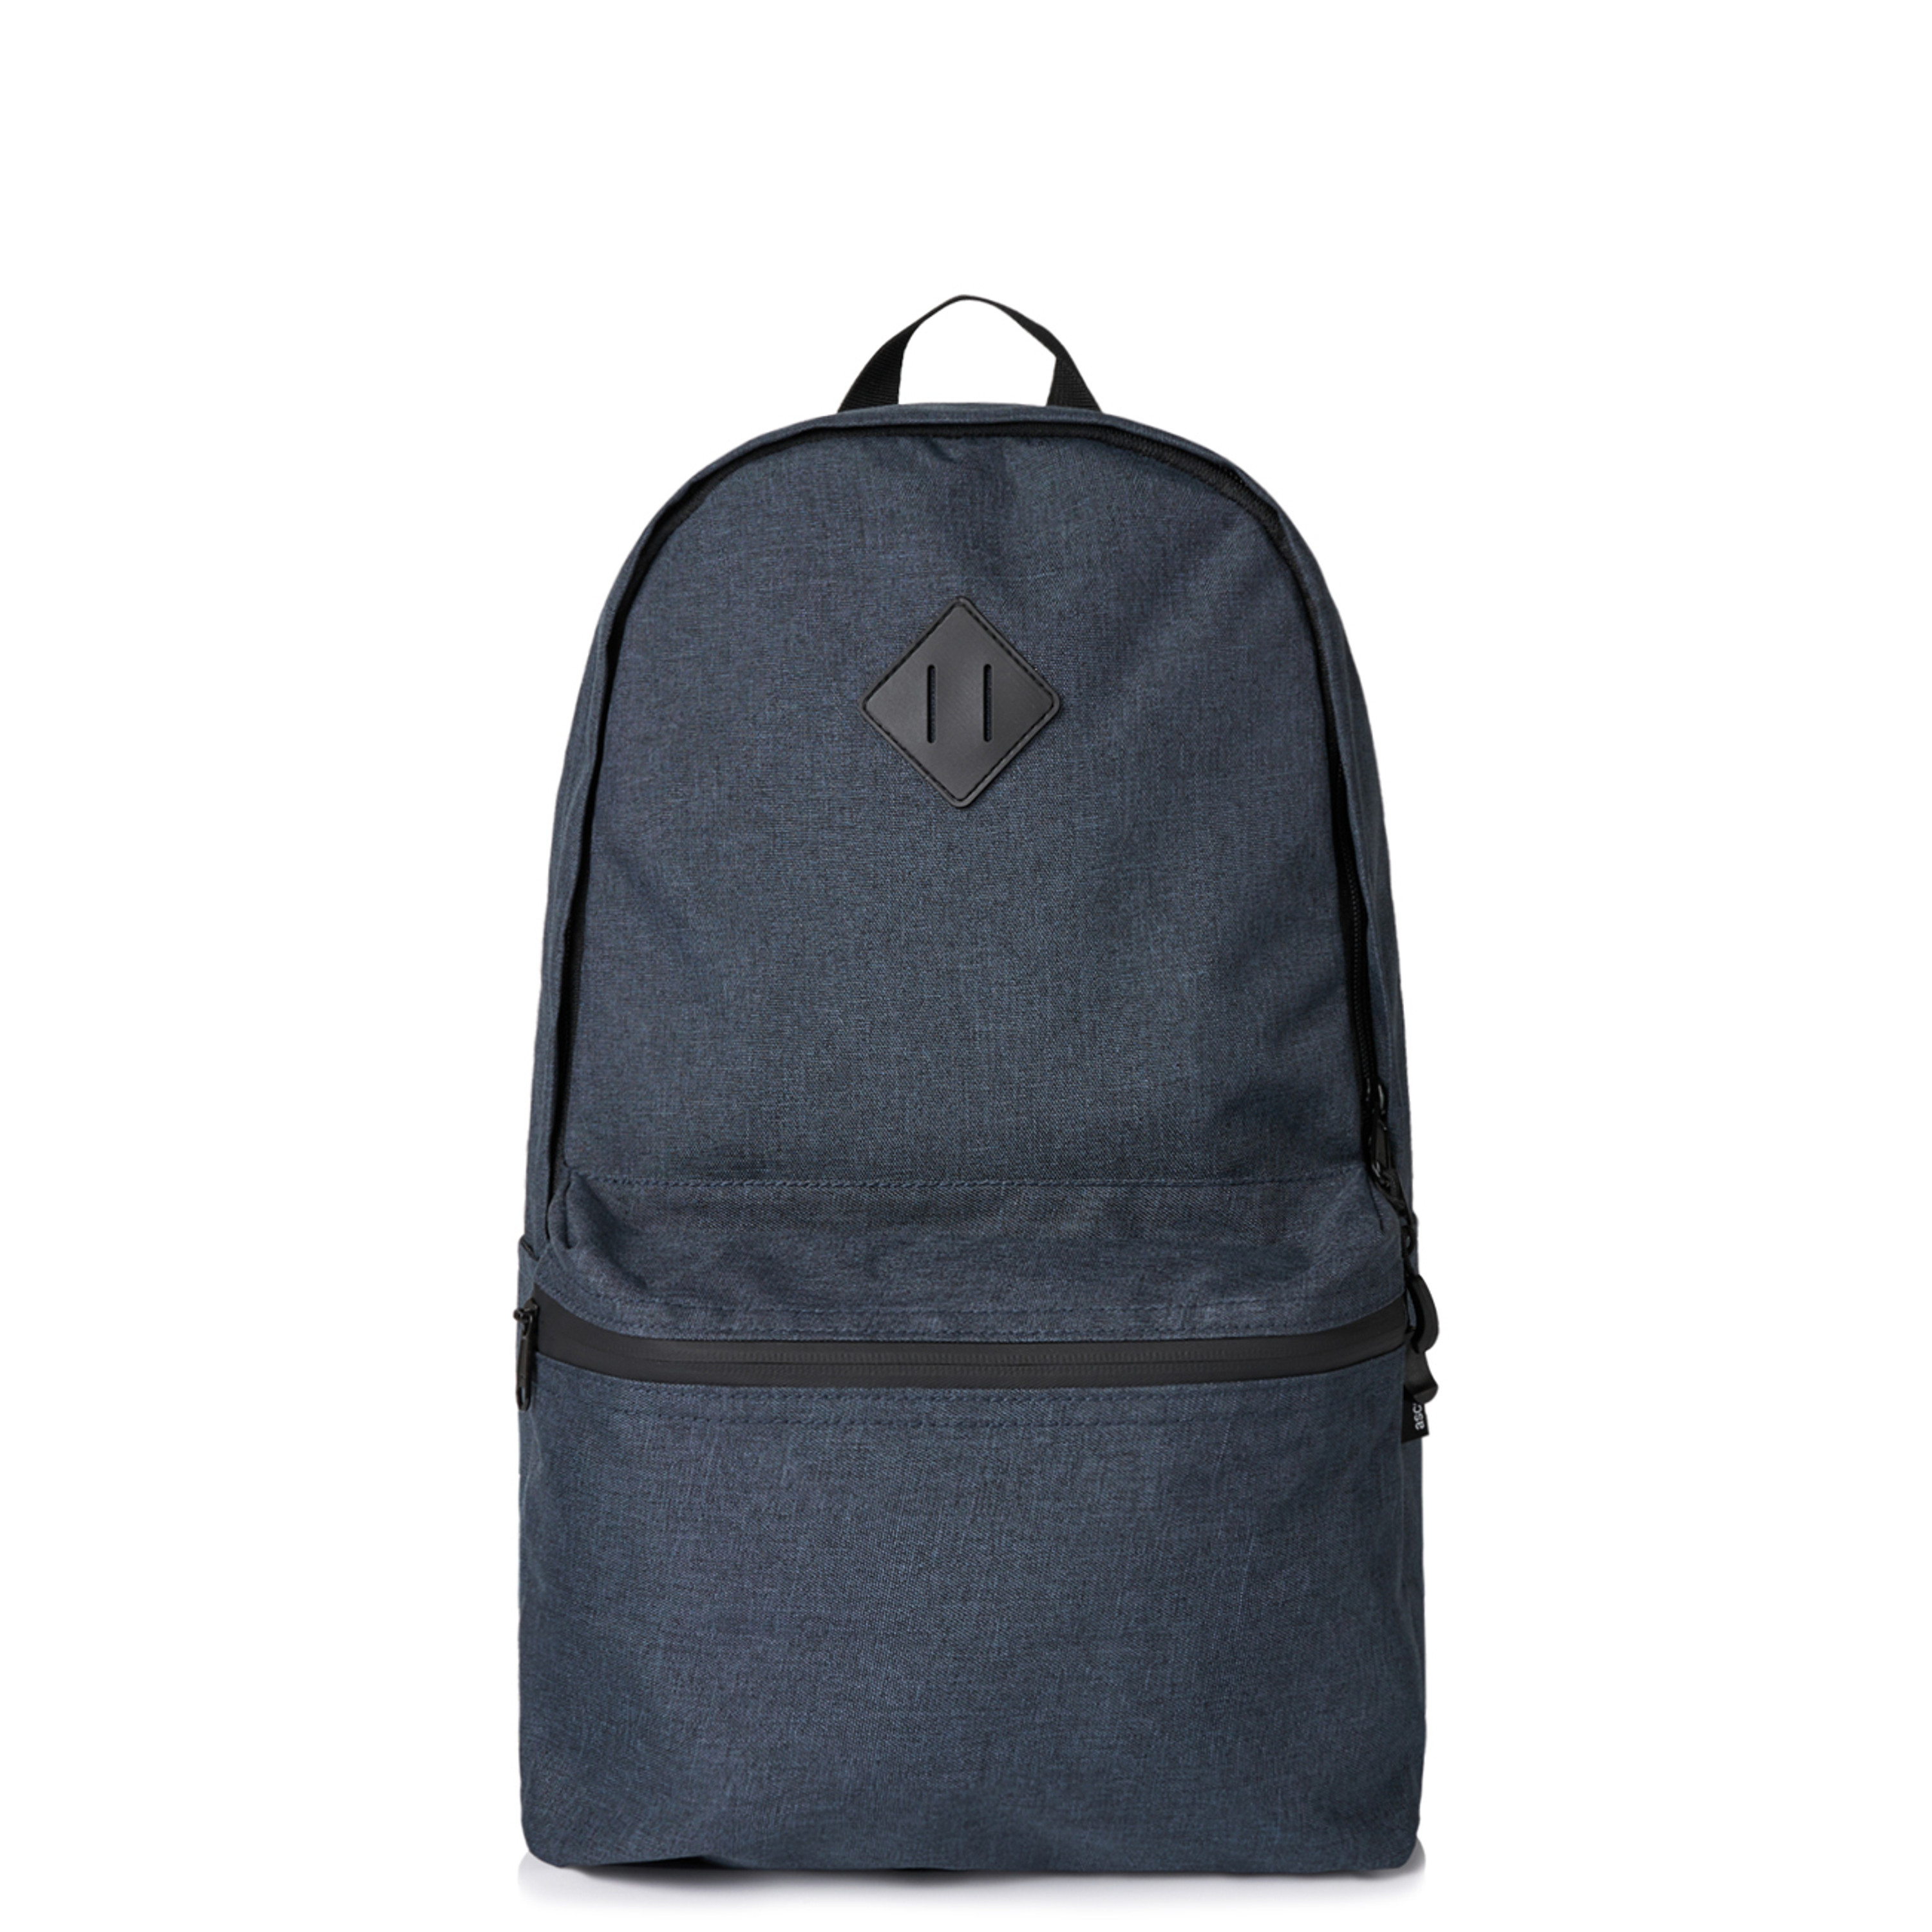 Day Backpack - 1013